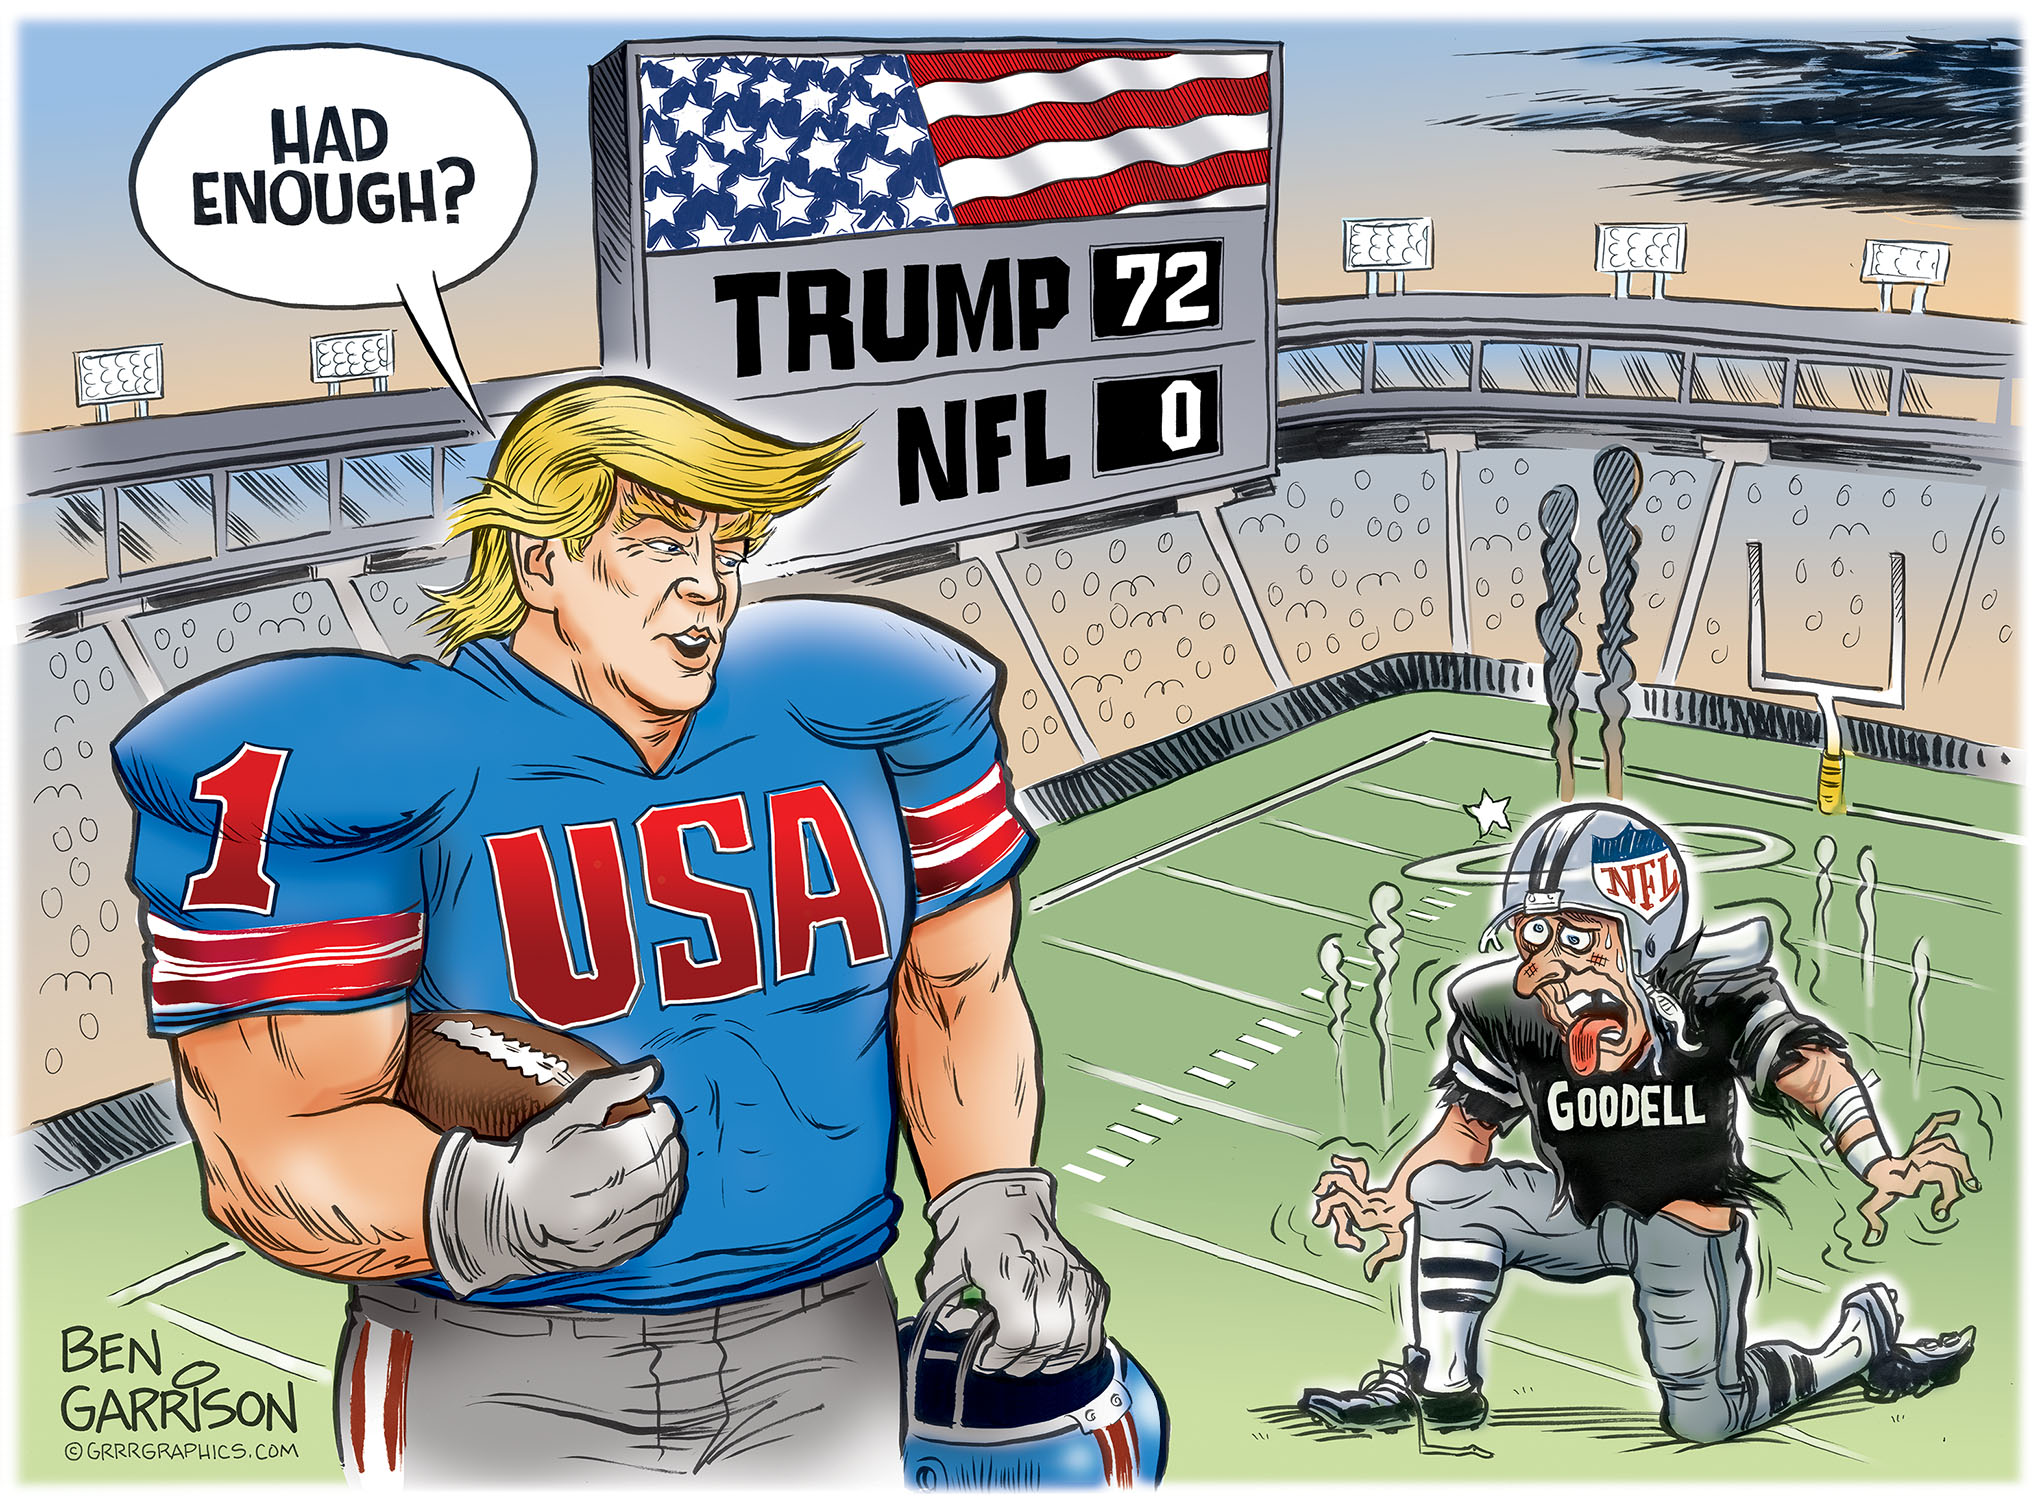 Nfl Football Player Cartoon Edits: What The New NFL Rule Means